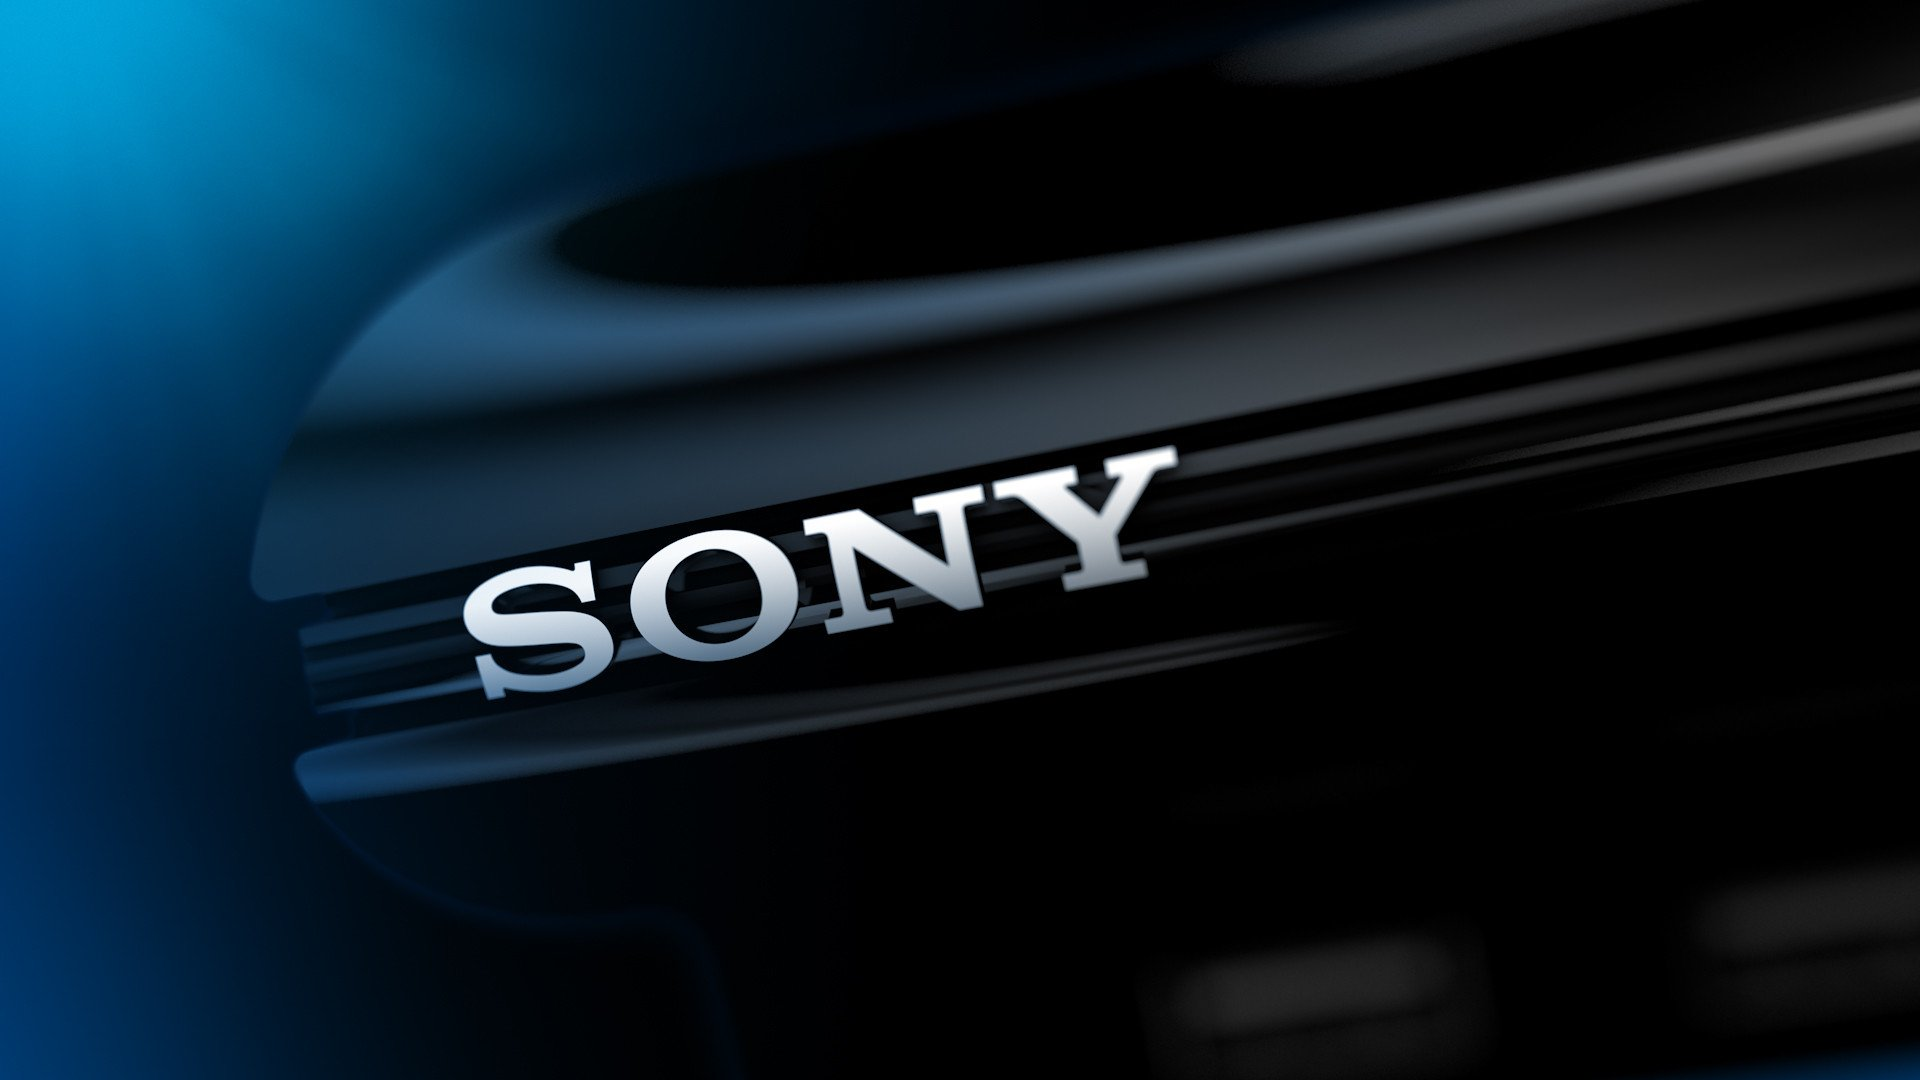 sony wallpaper